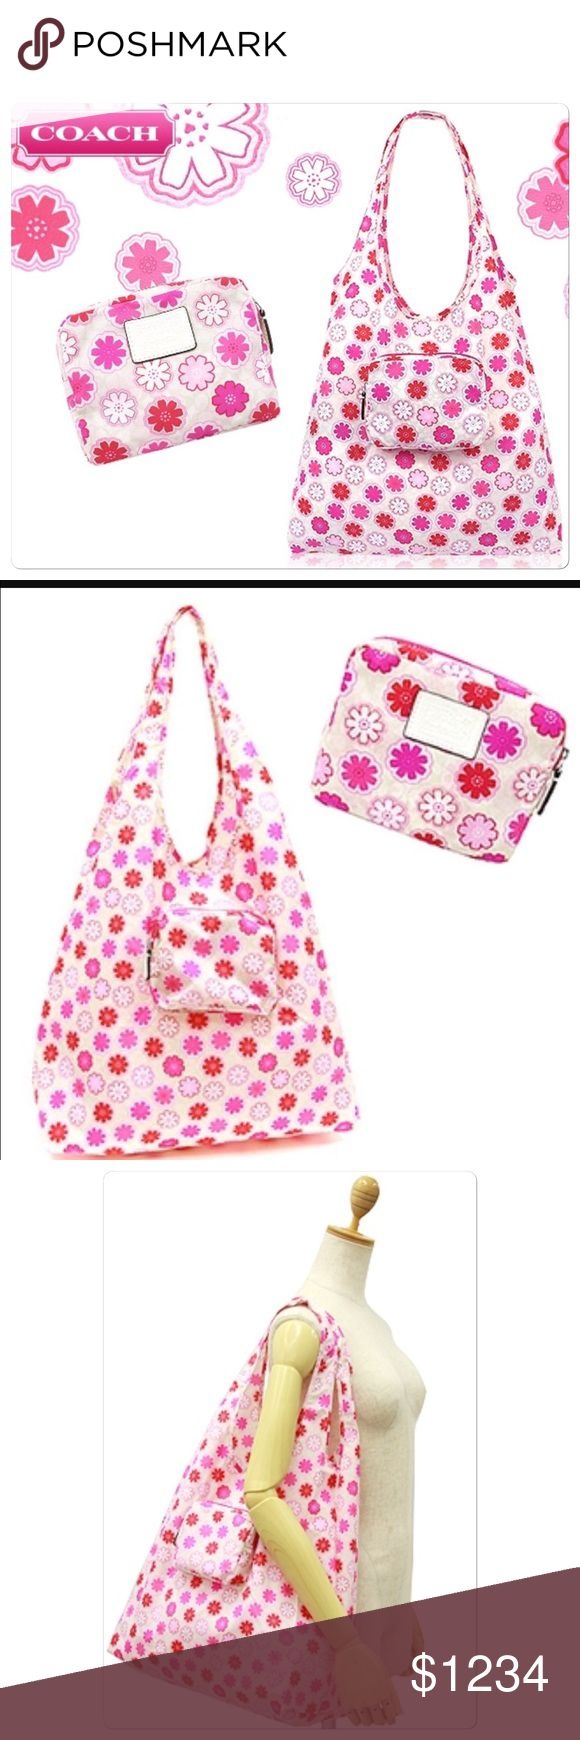 """NWT Authentic Coach Shopping Nylon Bag NWT Authentic Coach Floral Print Folding Tote Reusable Tote / Bag F67844 NWT  nylon fabric  Tote folds into attached pouch for compact storage  Handles with 11 1/2"""" drop  Approximate Unfolded tote bag measures 15"""" (L) x 13.5"""" (H)  Approximate Storage pouch measures 5 1/2"""" (L) x 4 """" (H) (Please remember measurements are approximate!) Smoke/pet free environment Coach Bags Totes"""